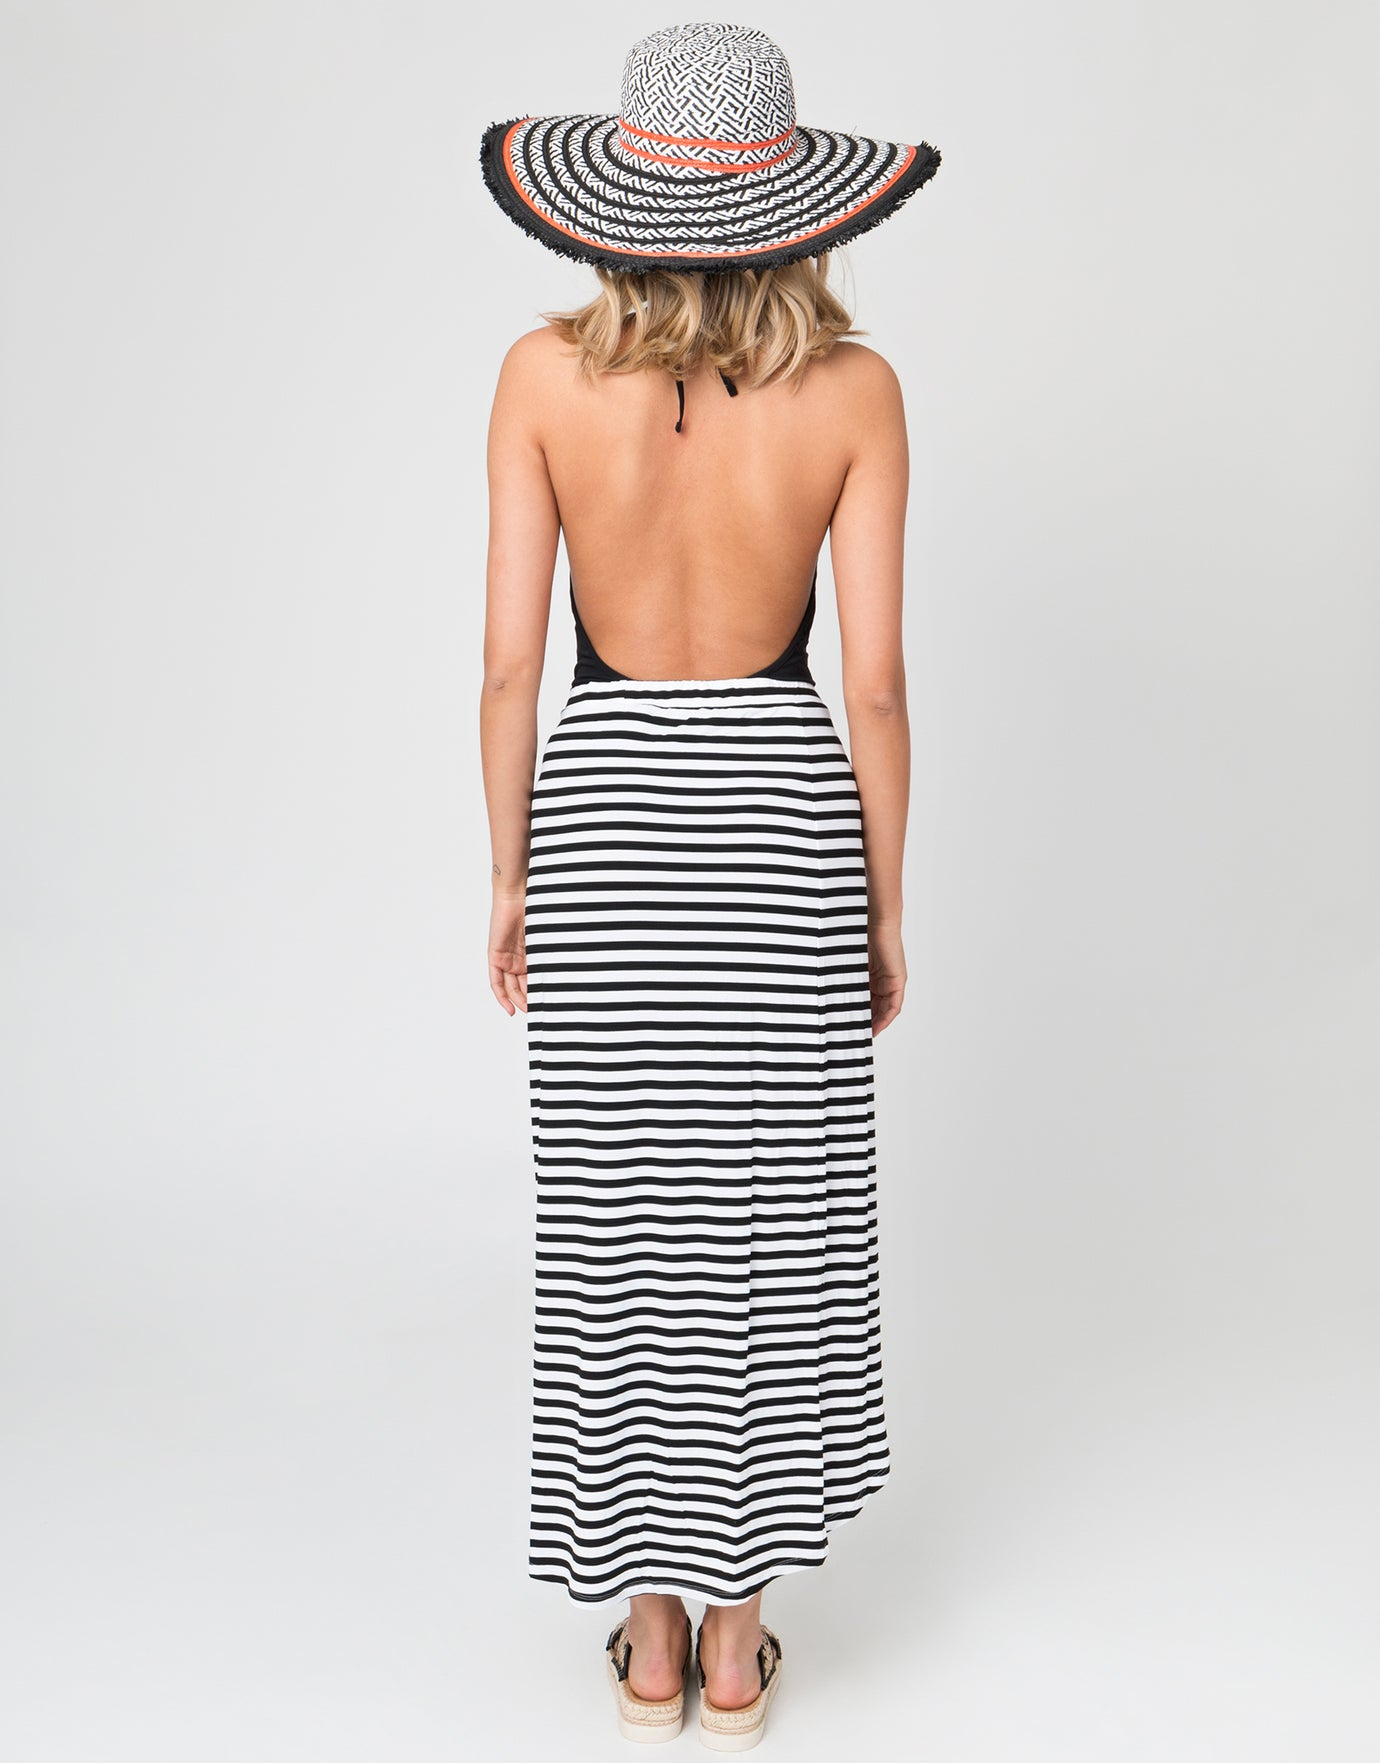 Pia Rossini Allure Maxi Skirt - Black/White